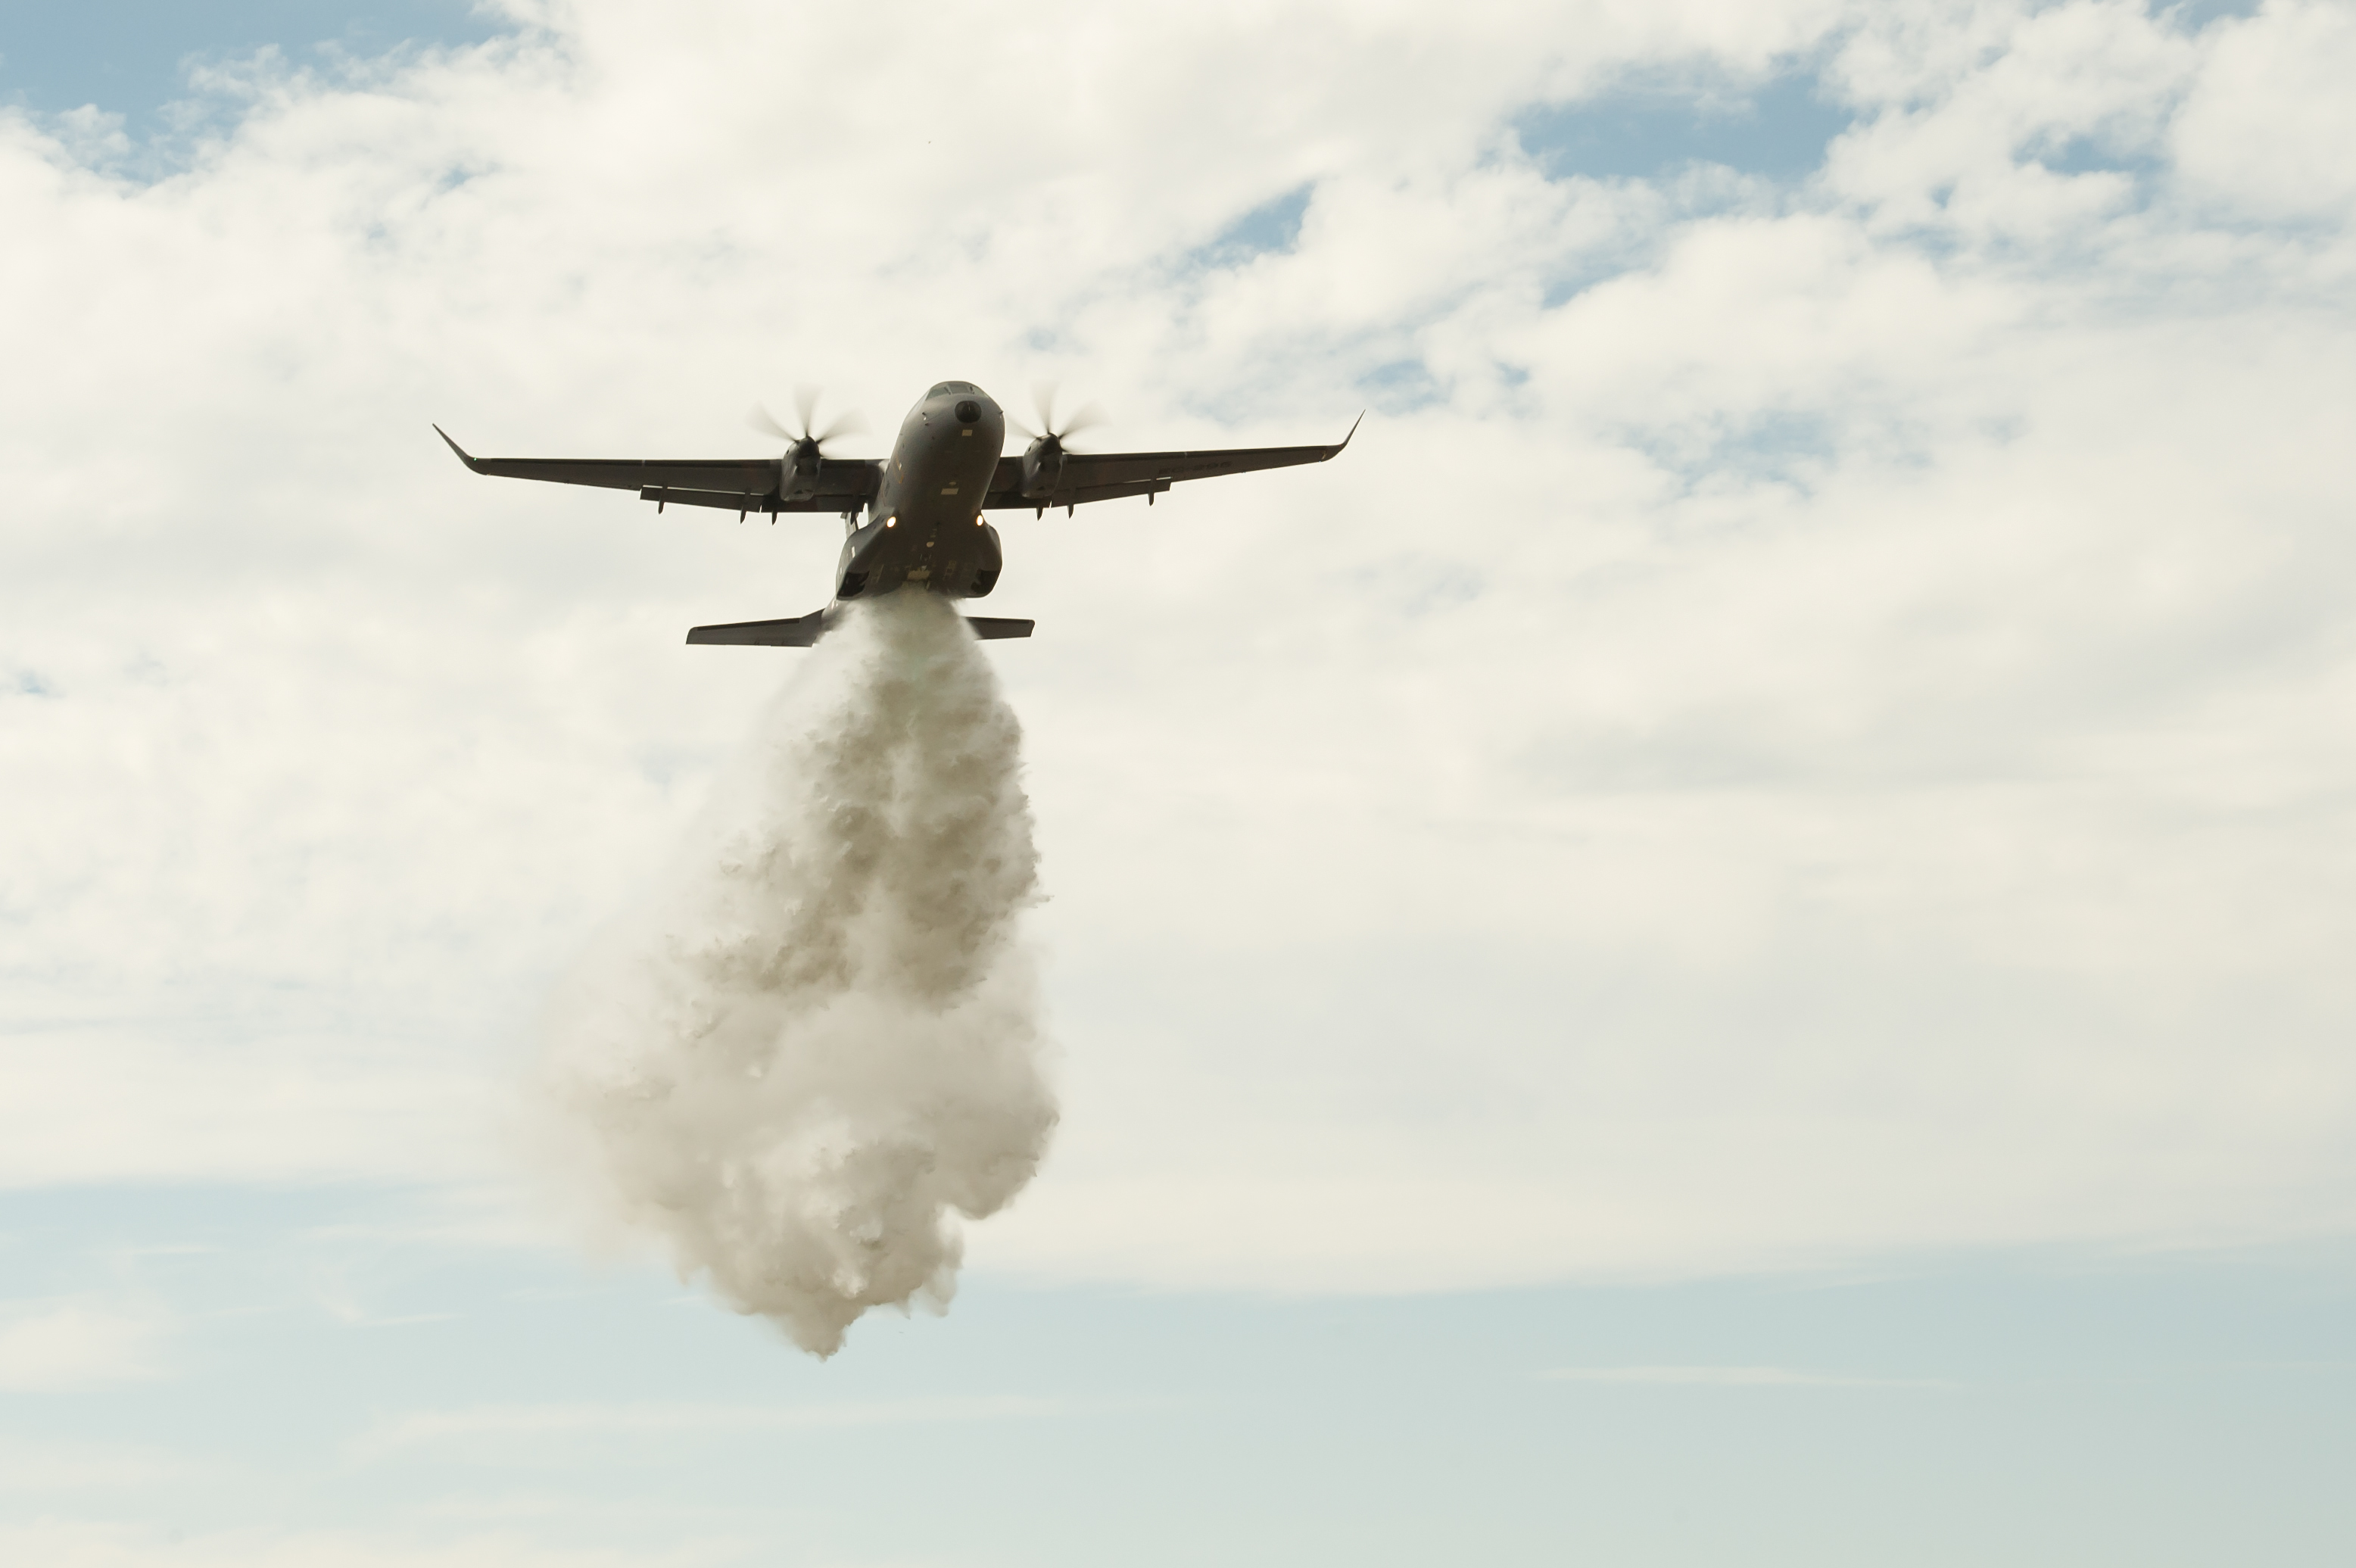 C295 Firefighter. Photo: Airbus Military